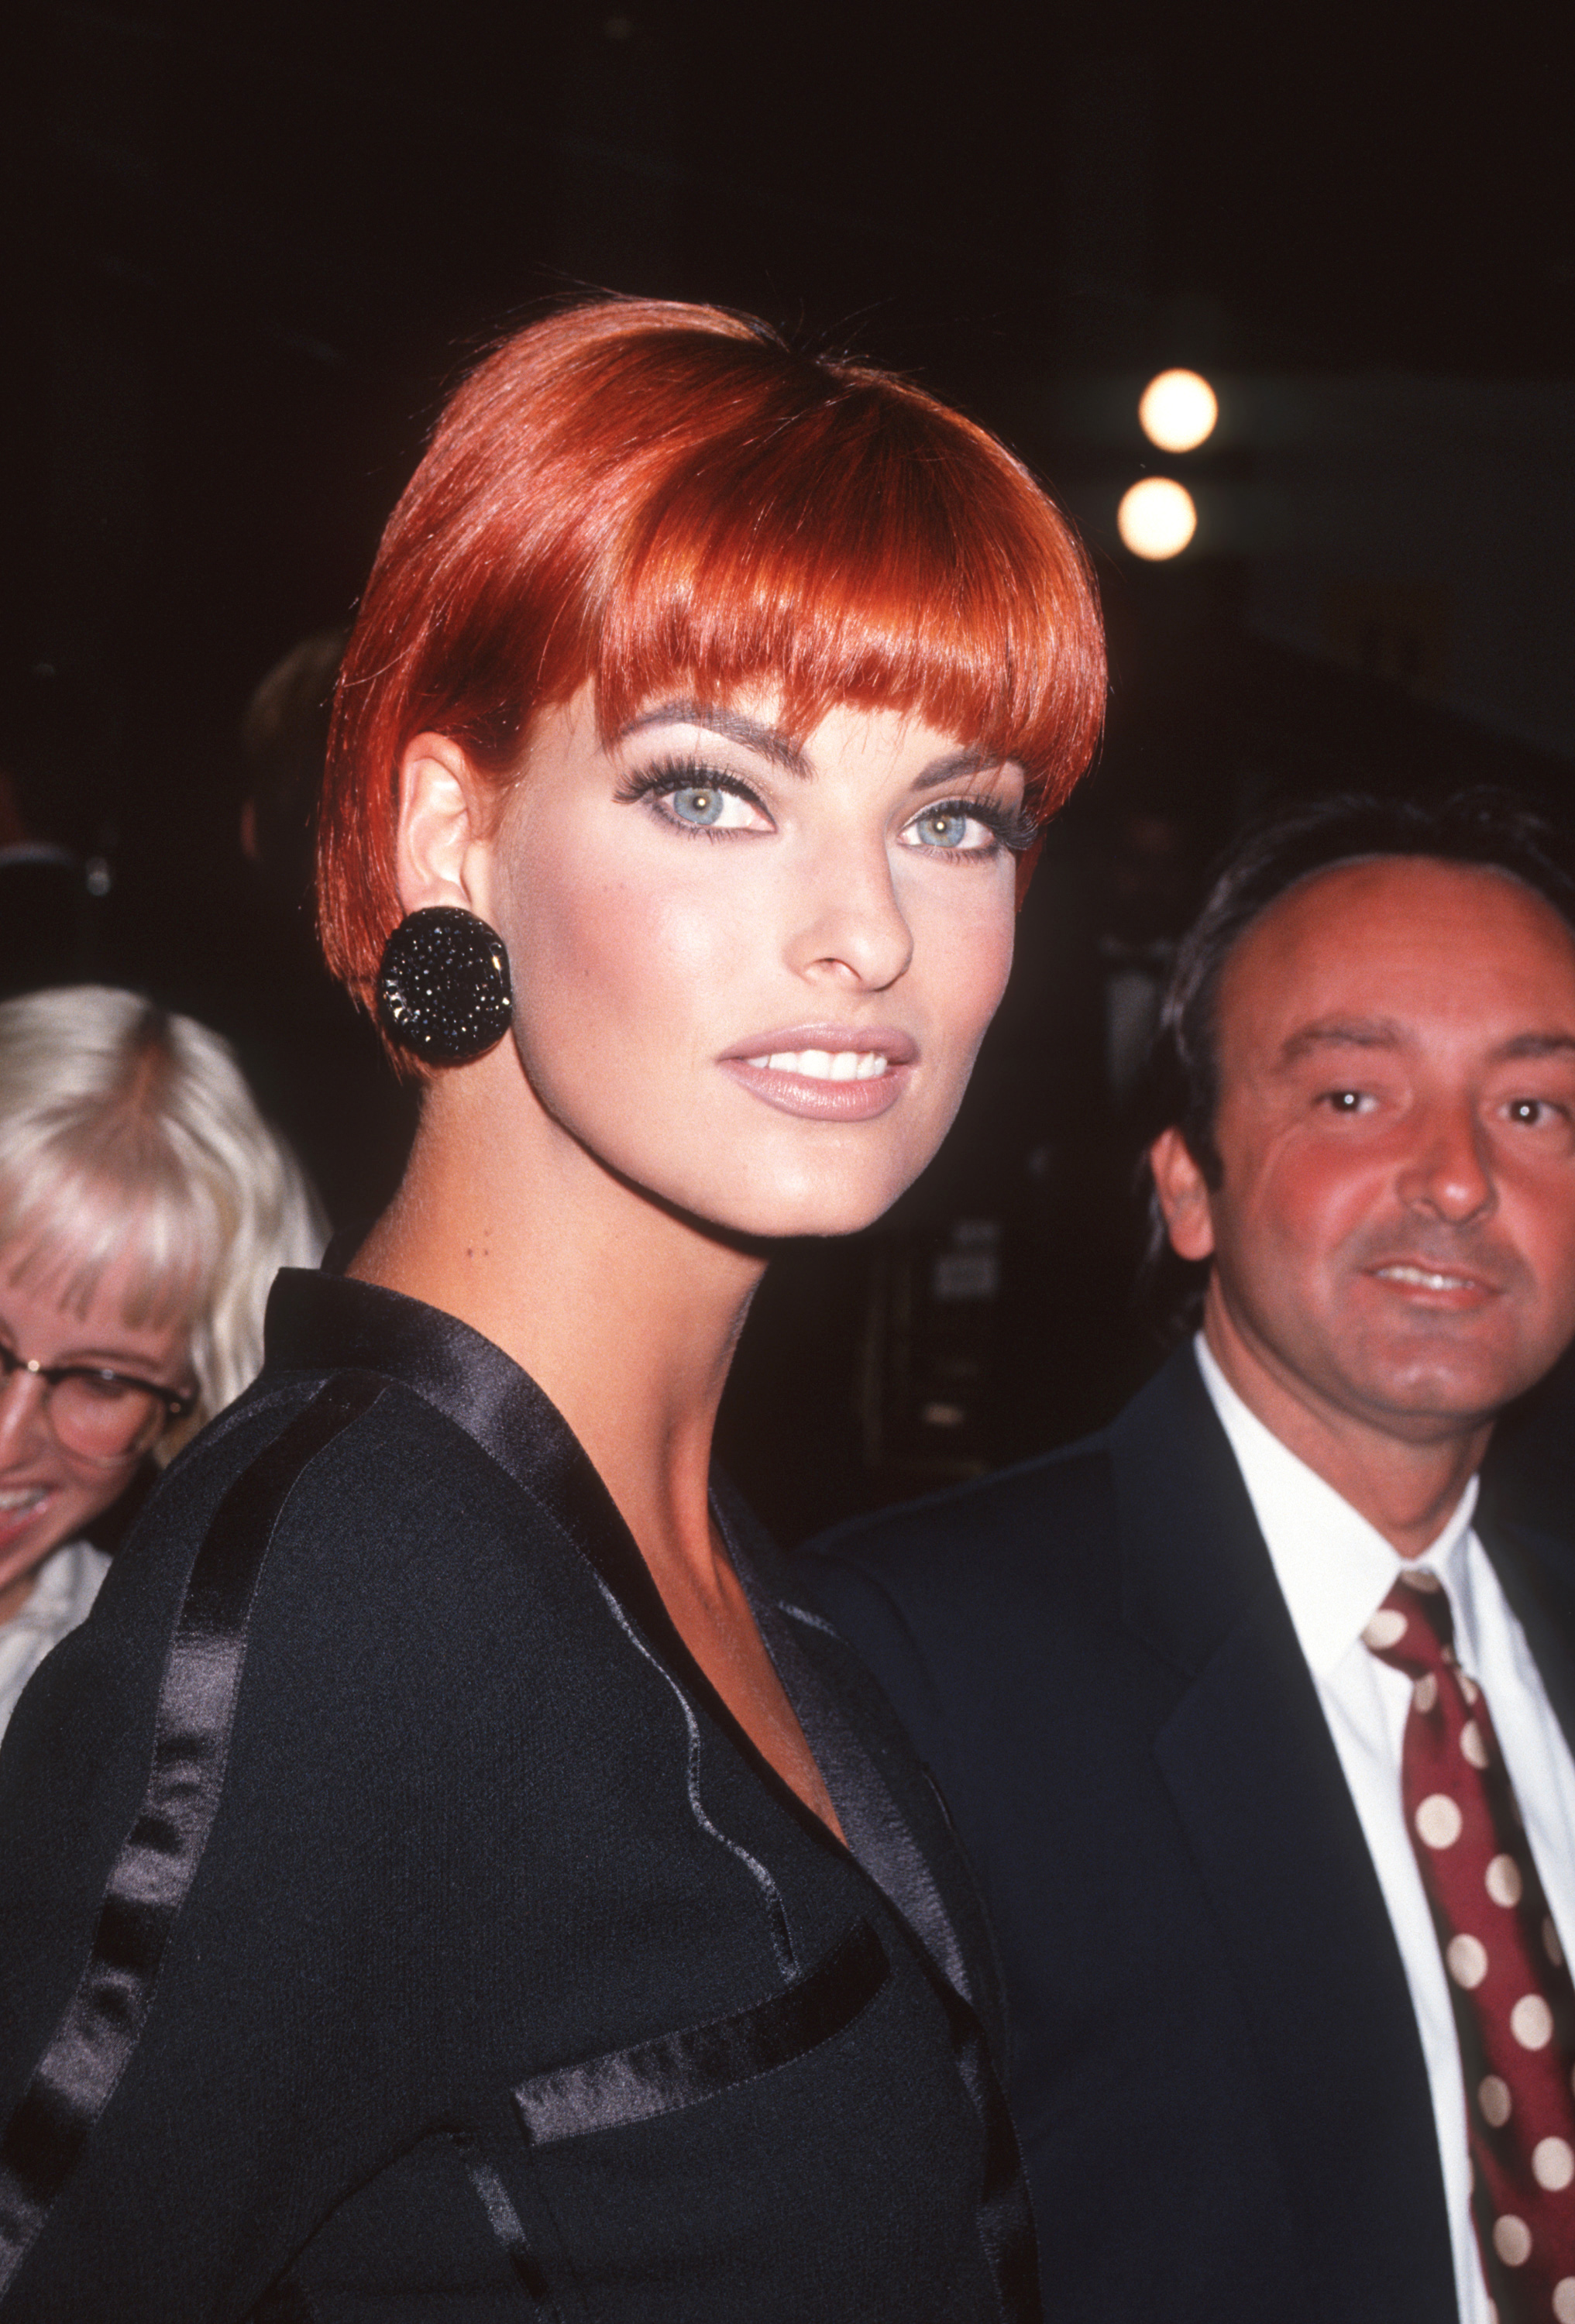 Former supermodel Linda Evangelista backs women accusing her ex-husband of rape and sexual misconduct